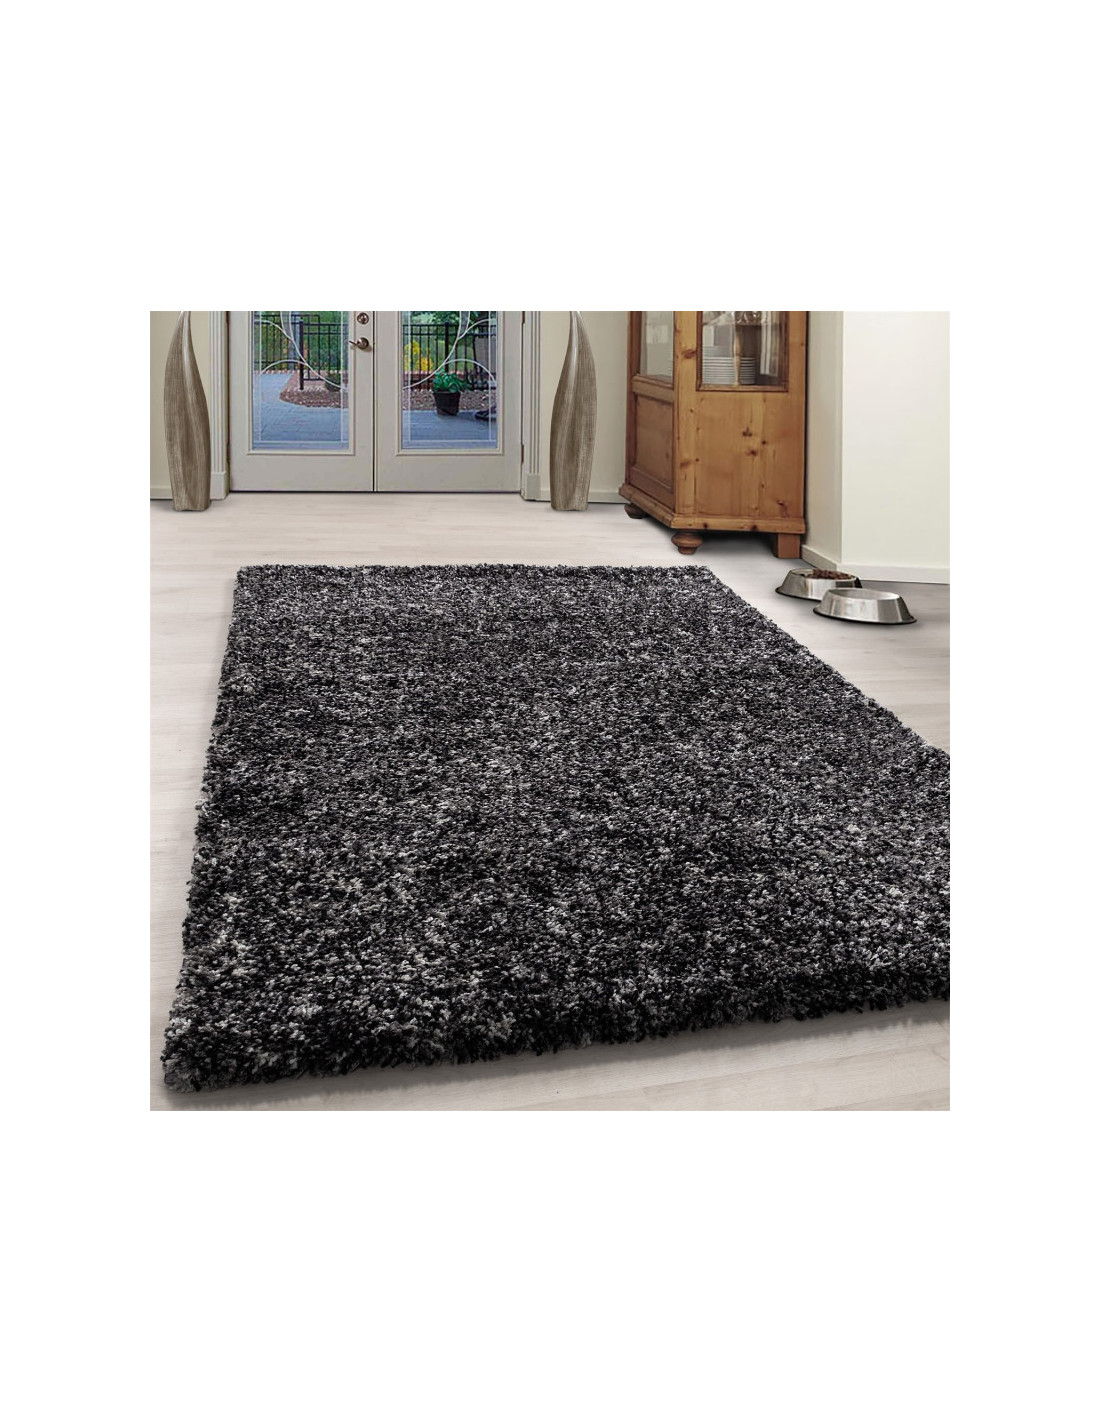 Living room shaggy carpet high quality long pile deep pile gray white mottled